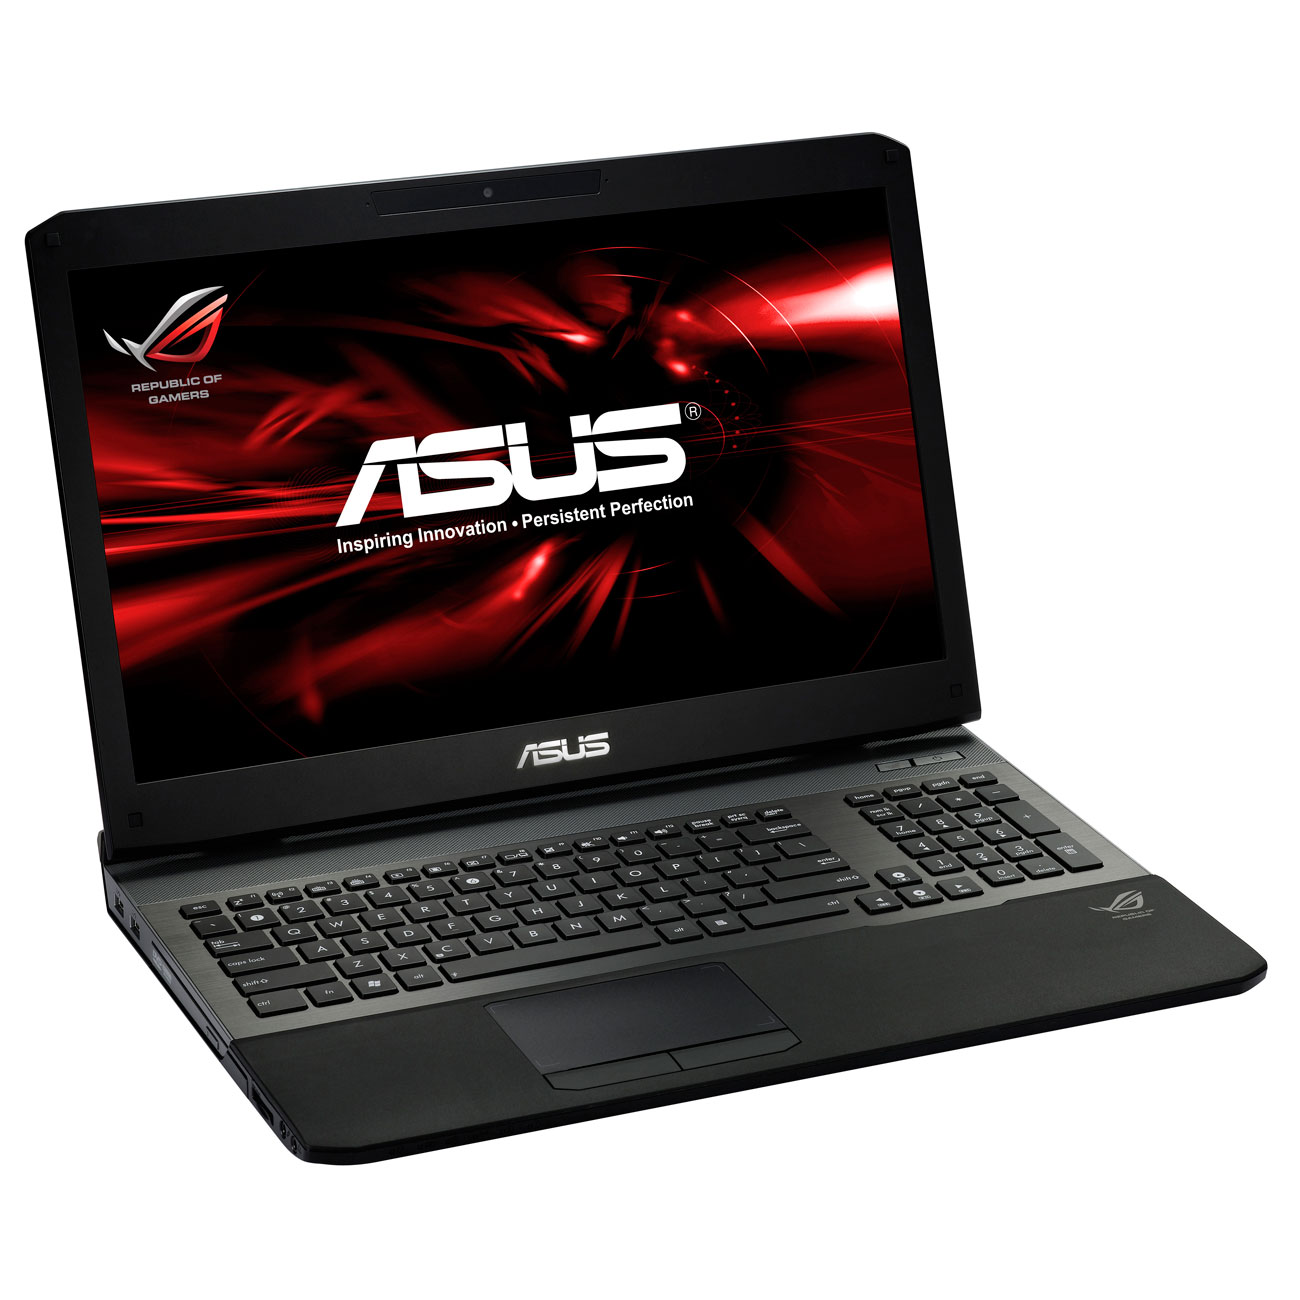 "PC portable ASUS G75VX-T4193H Intel Core i7-3630QM 8 Go SSD 256 Go + HDD 750 Go 17.3"" LED NVIDIA GeForce GTX 670MX Graveur DVD Wi-Fi N/Bluetooth Webcam Windows 8 64 bits (garantie constructeur 2 ans)"